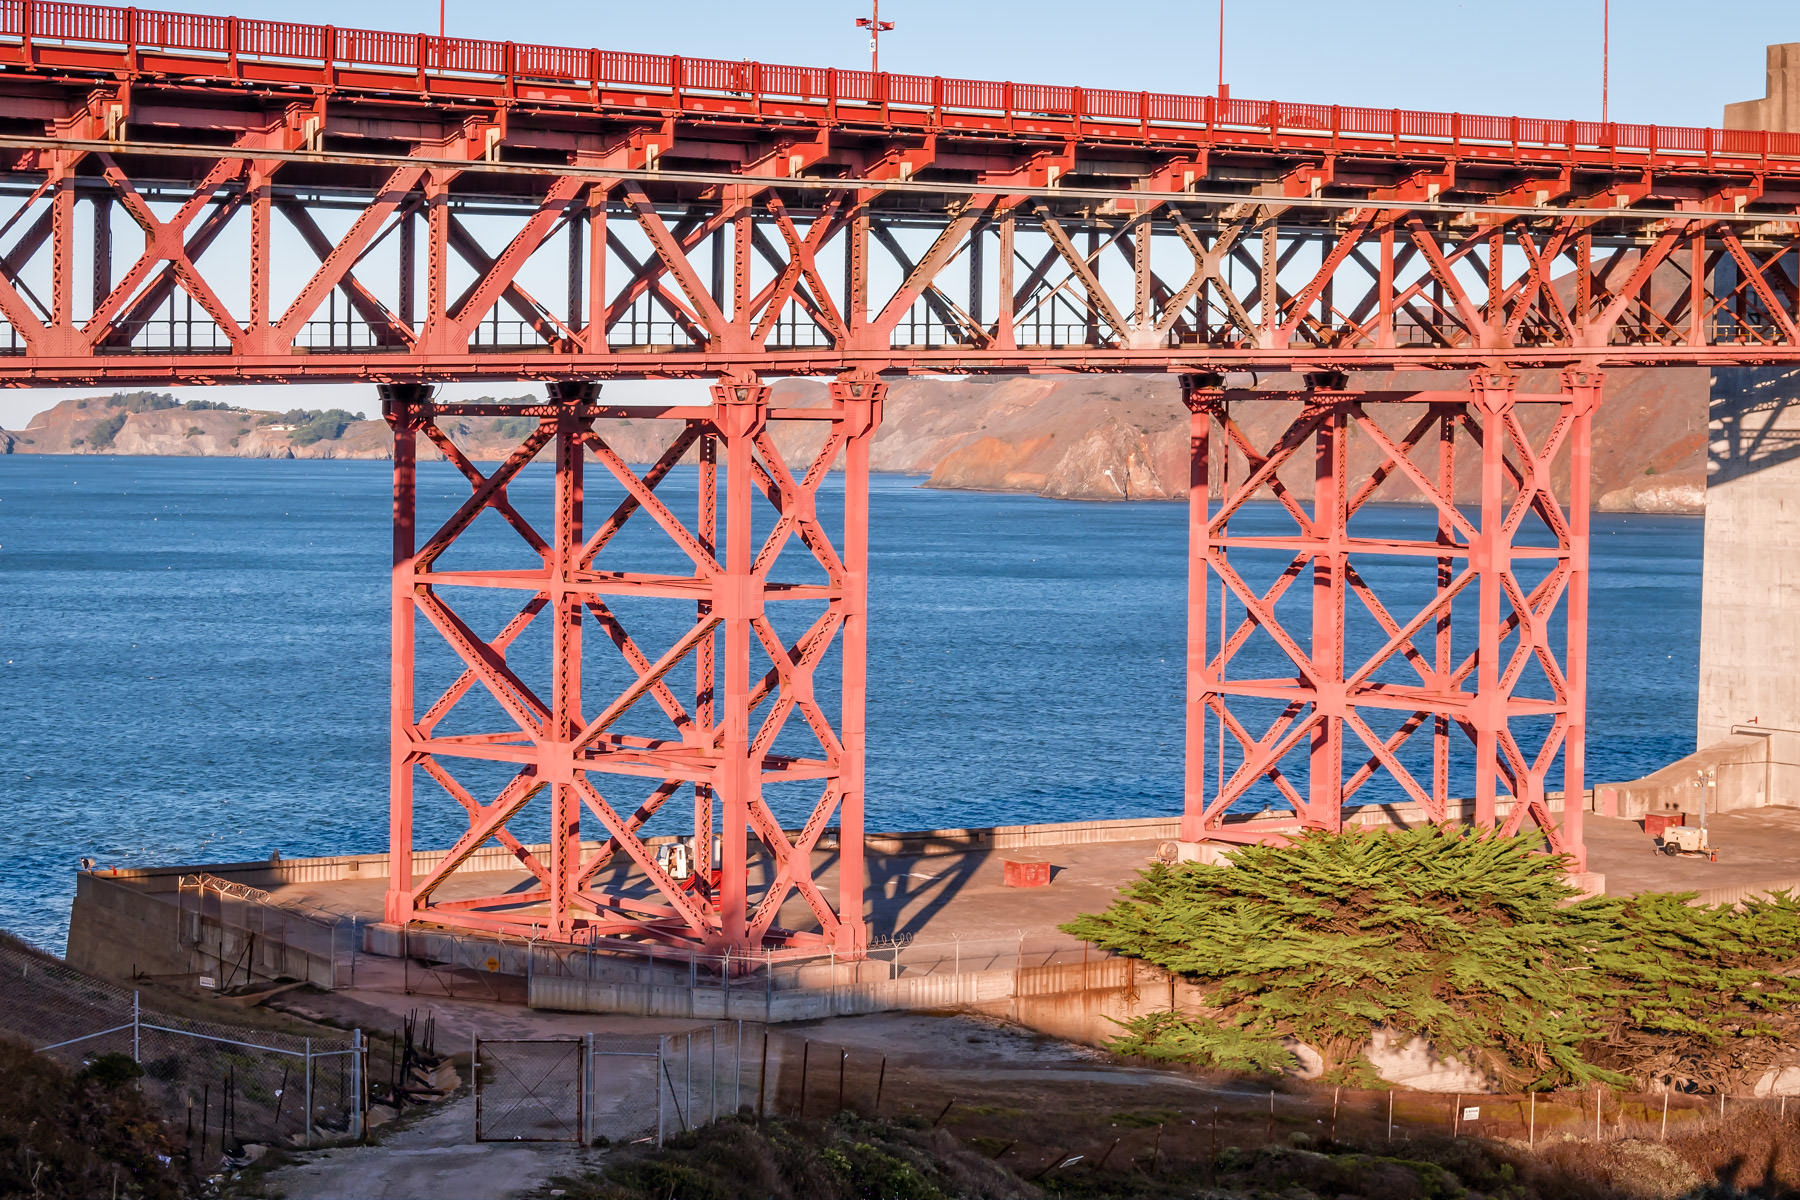 A detailed look at the massive support structures of the San Francisco Approach Viaduct on the southern end of the Golden Gate Bridge.